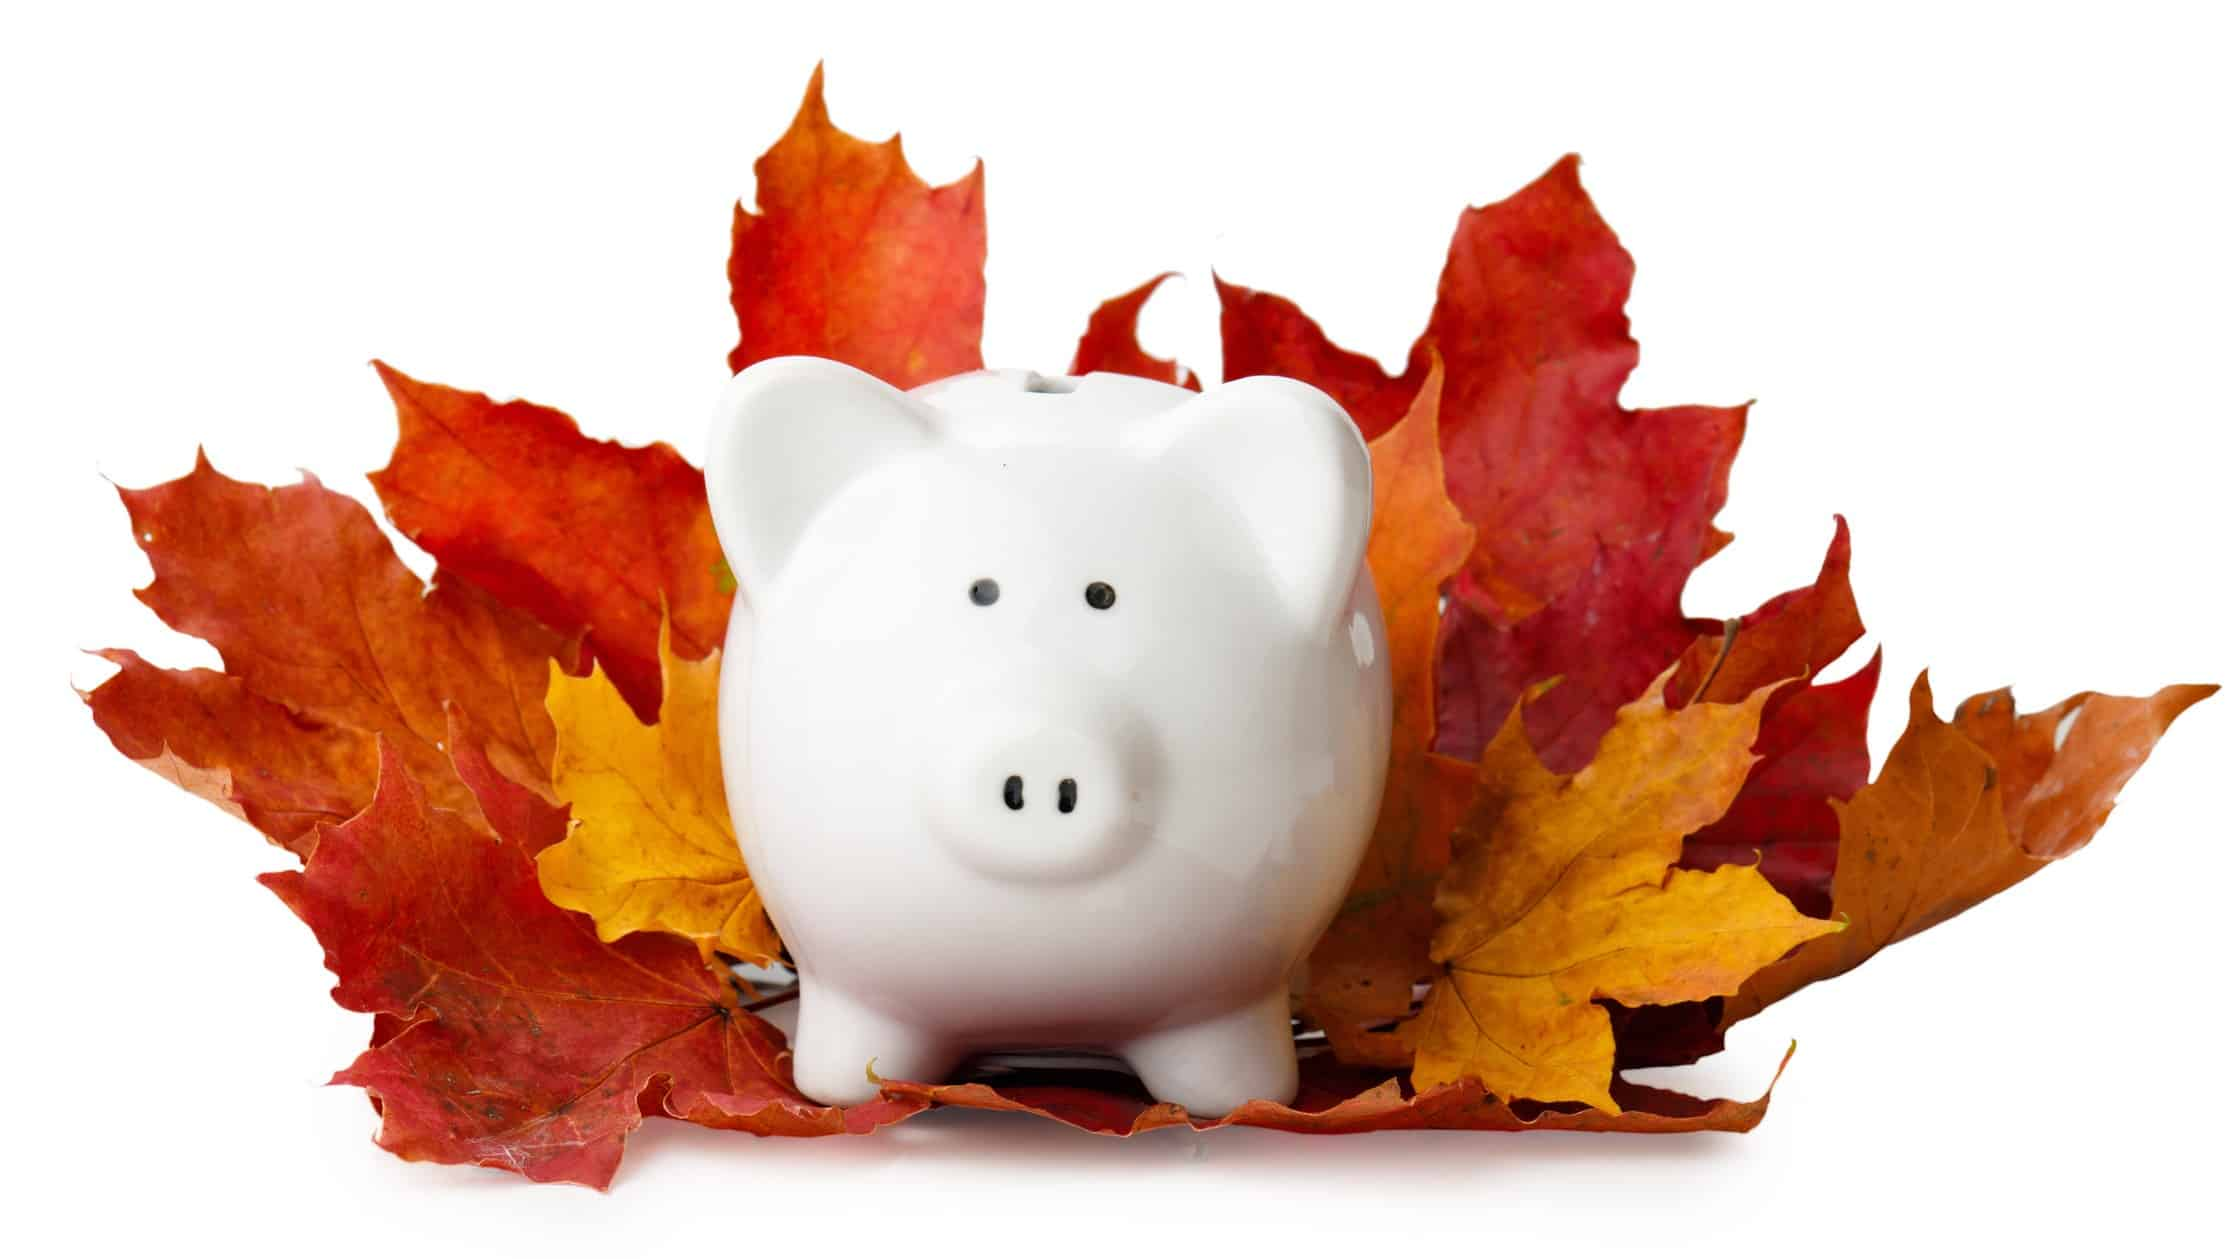 Brest ASX shares represented by piggy bank surrounded by autumn leaves